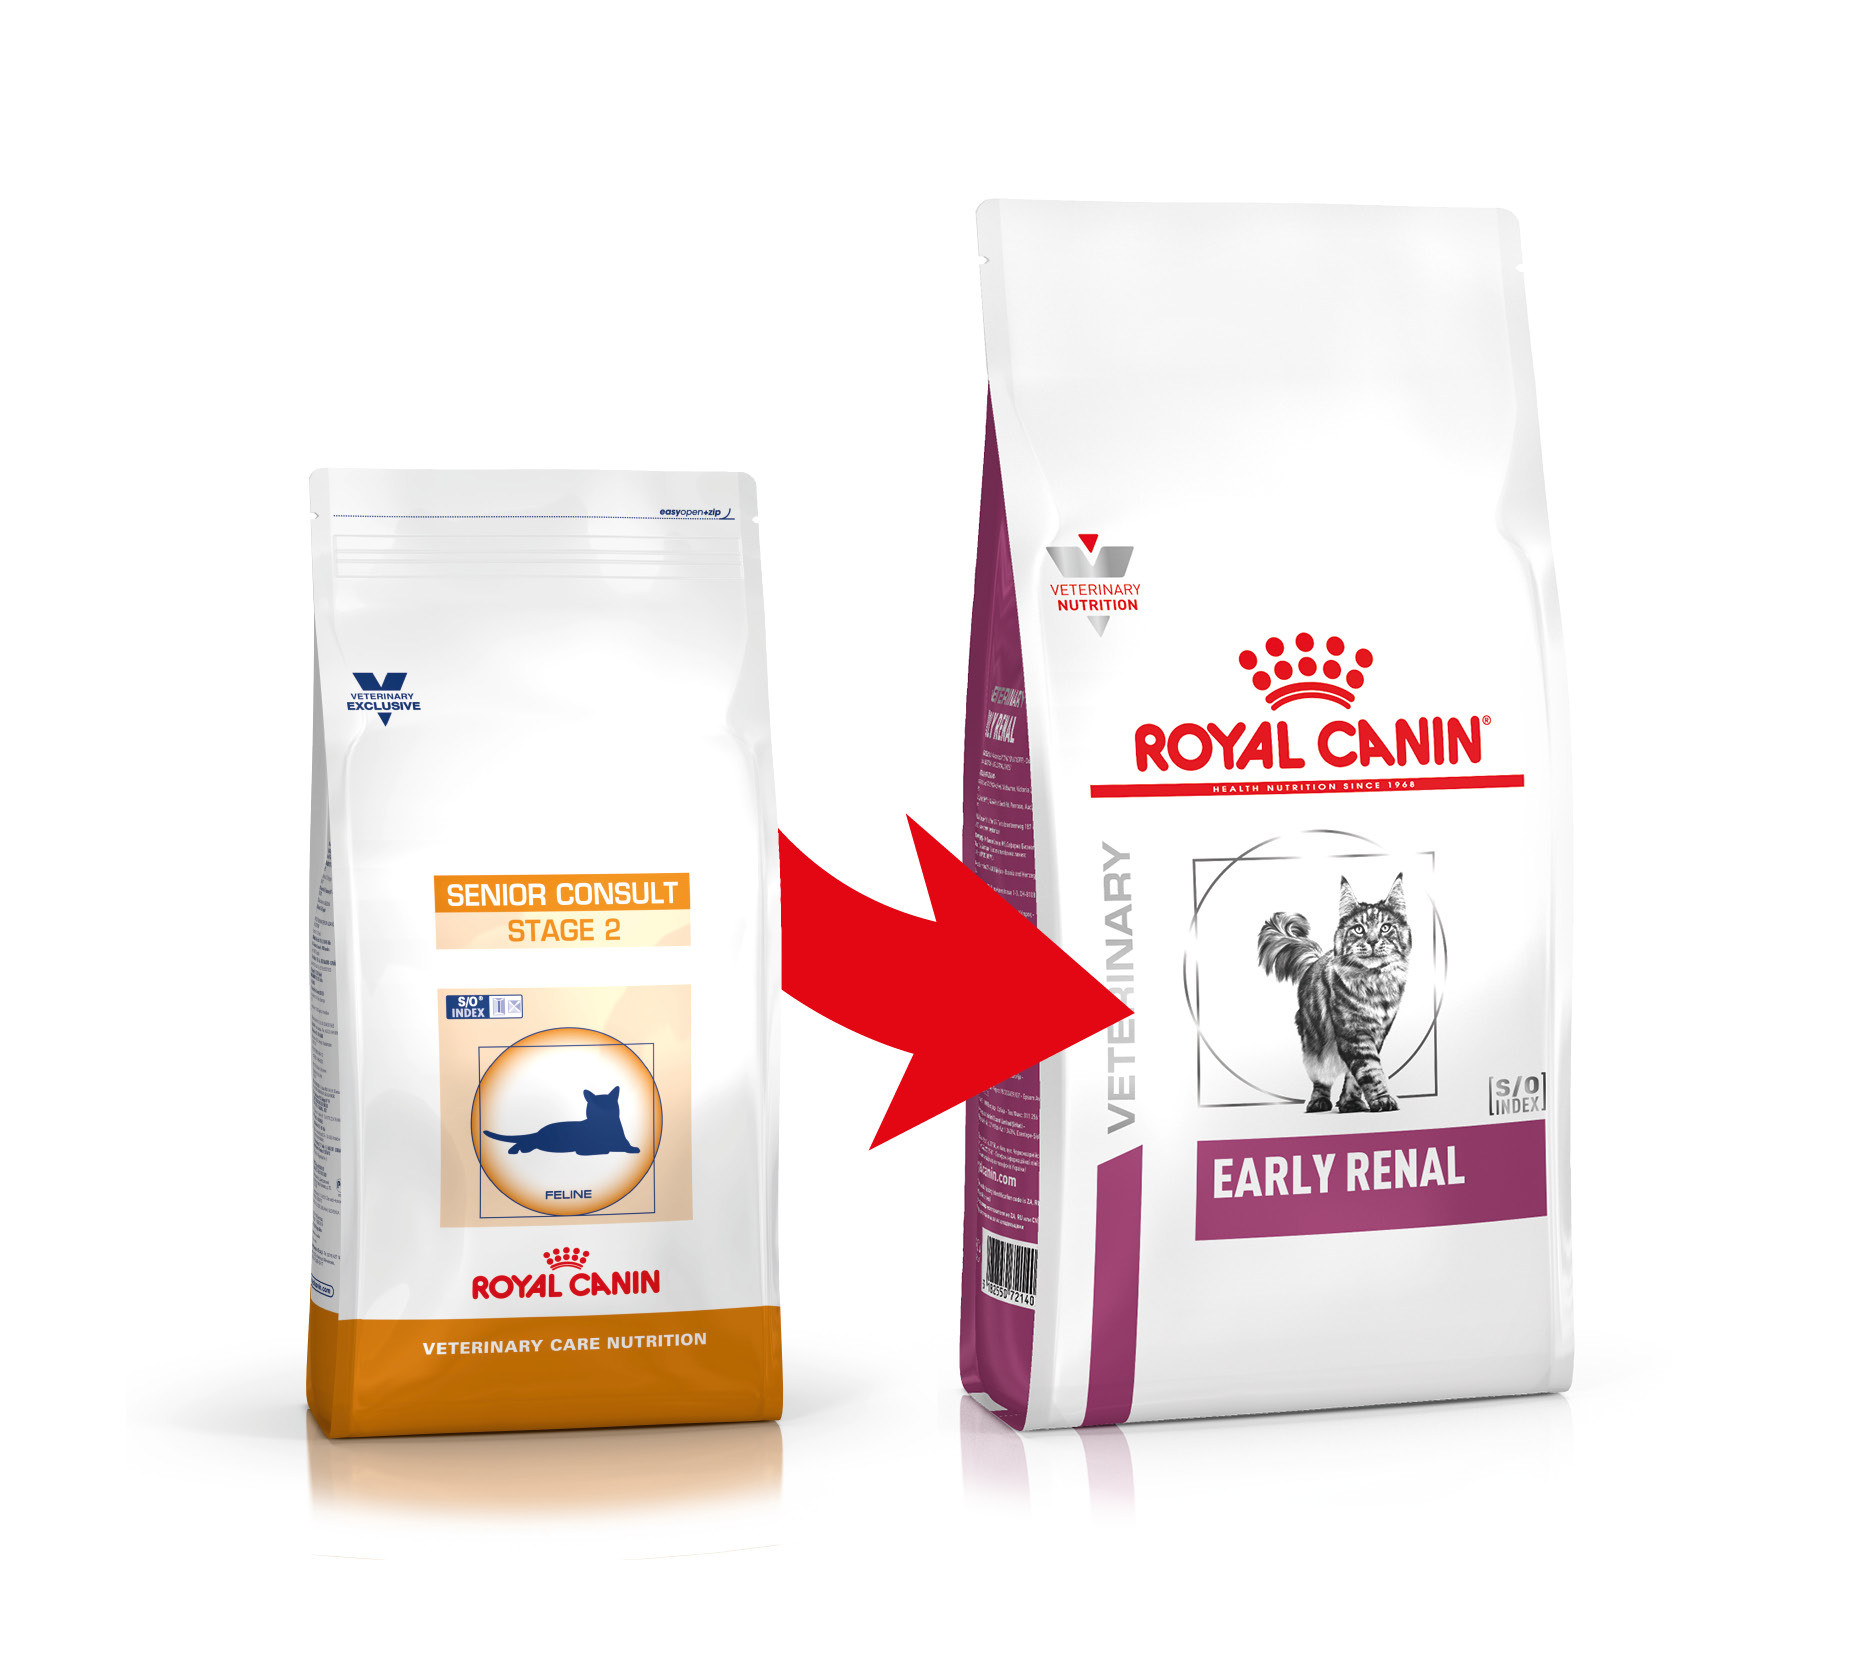 Royal Canin VCN Senior Consult Stage 2 pour chat